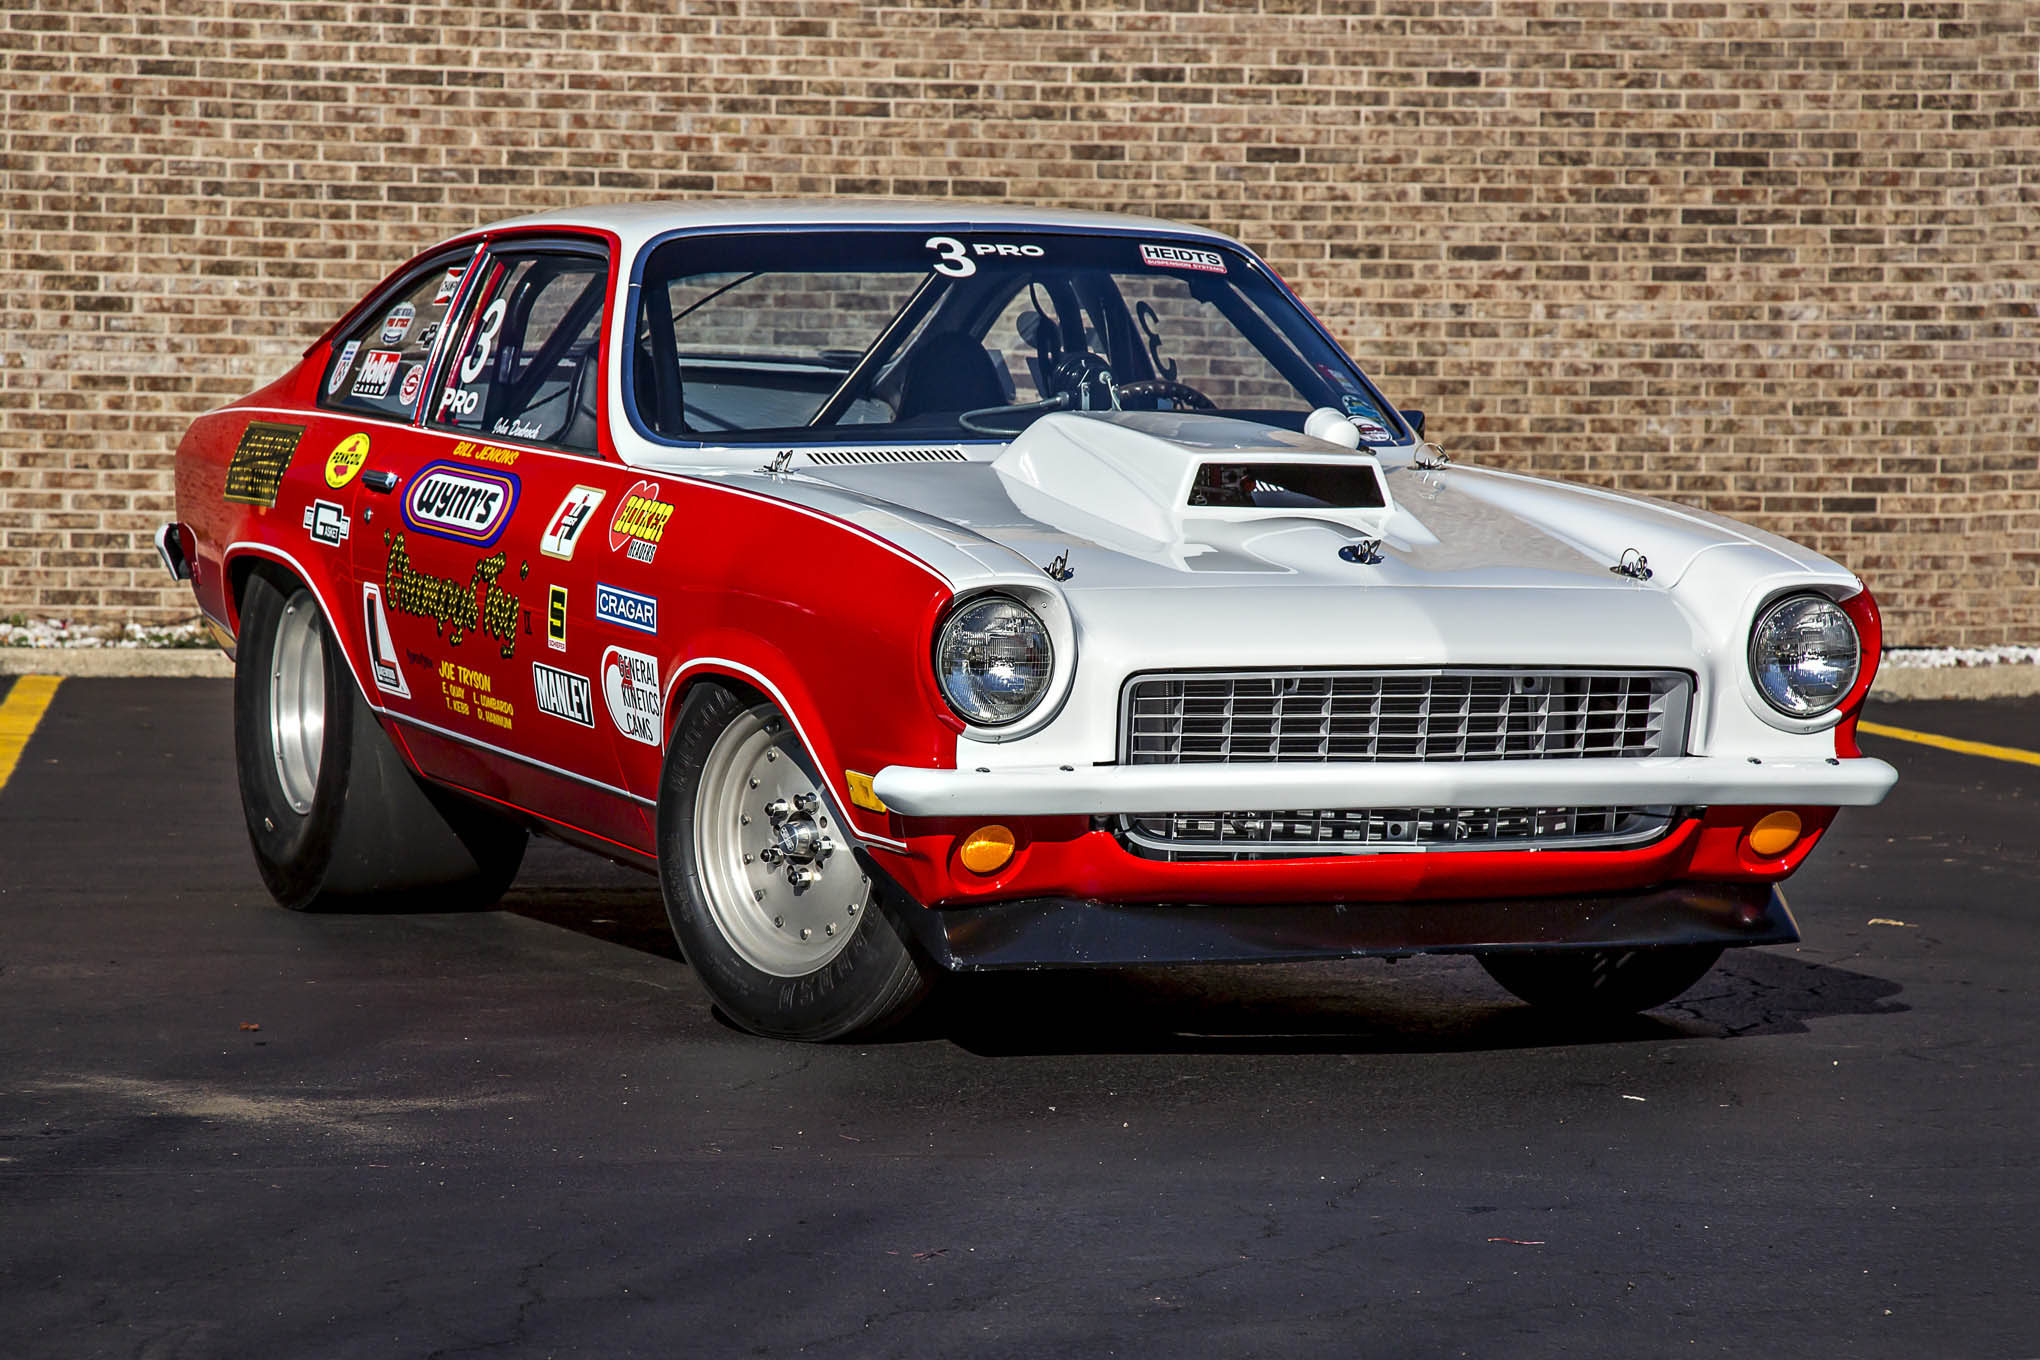 Another Grumpy's Toy, this one being the IX 1973 Vega, a car that originally raced in the 1970s and 1980s before being configured into the Toy in 2012 by current owner John Denbrock. Mid-Towne Collision in Howell, Michigan, handled paint and bodywork, with help from pals Bill and Chris Merrill, Rick Hanifan, and Stacy Karnes.